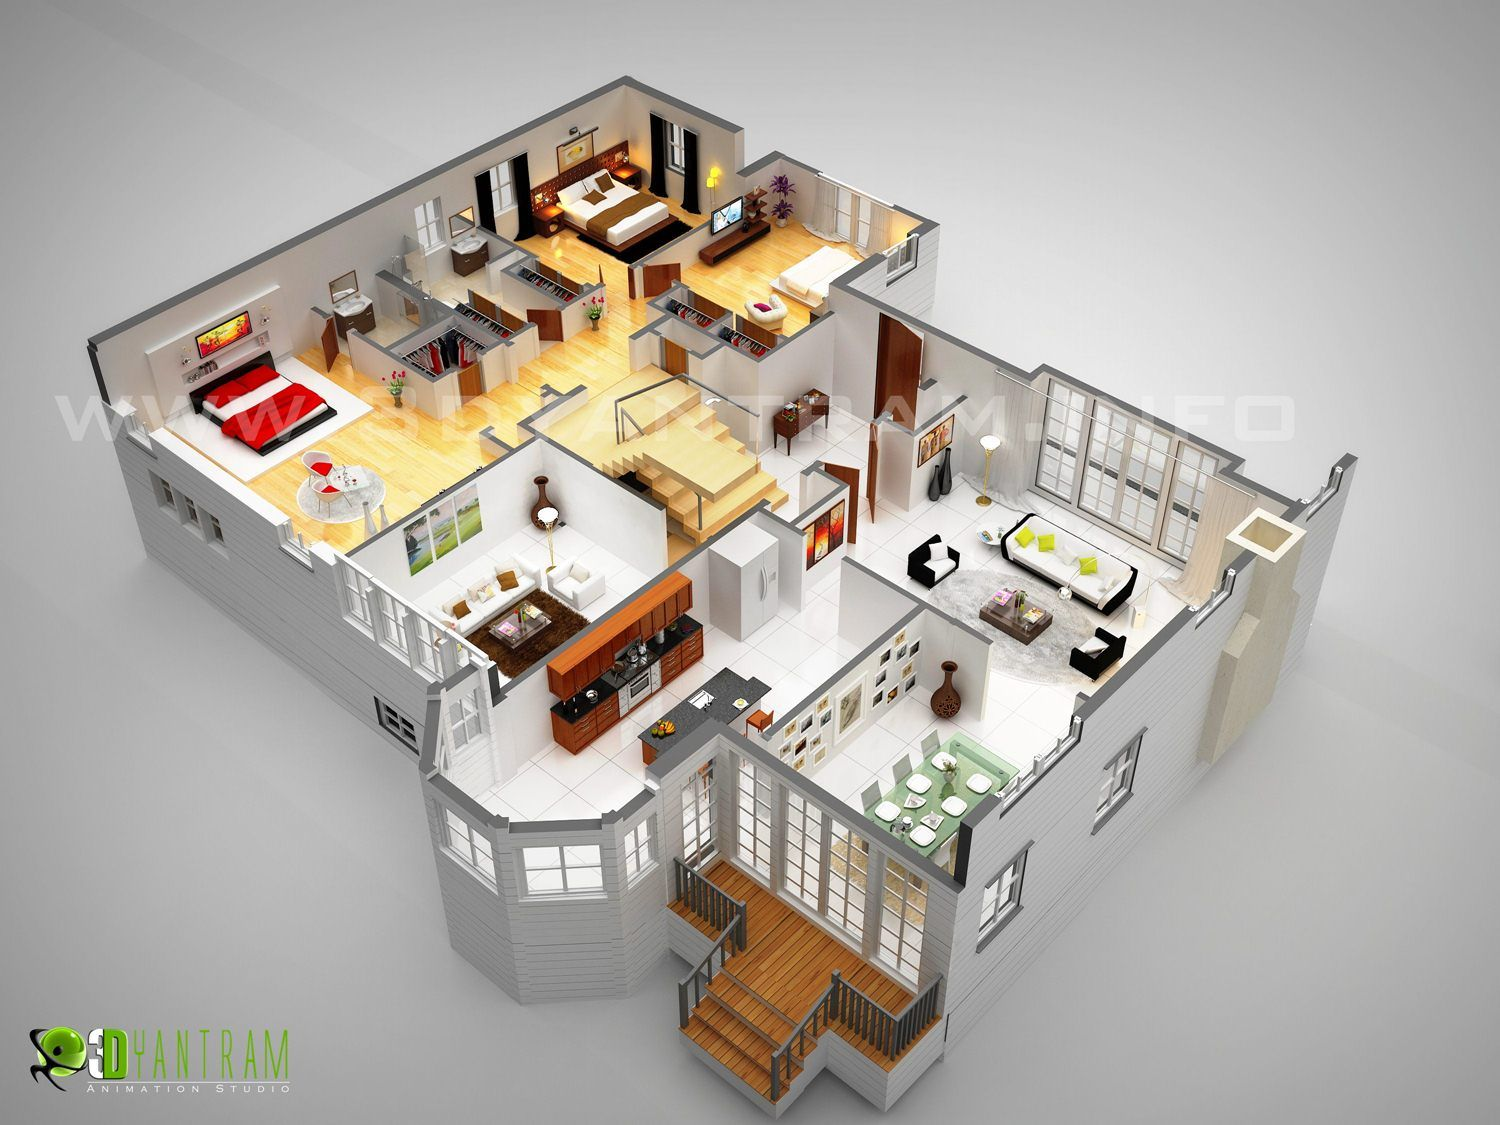 Laxurious residential 3d floor plan paris sims for 3d home floor plan design